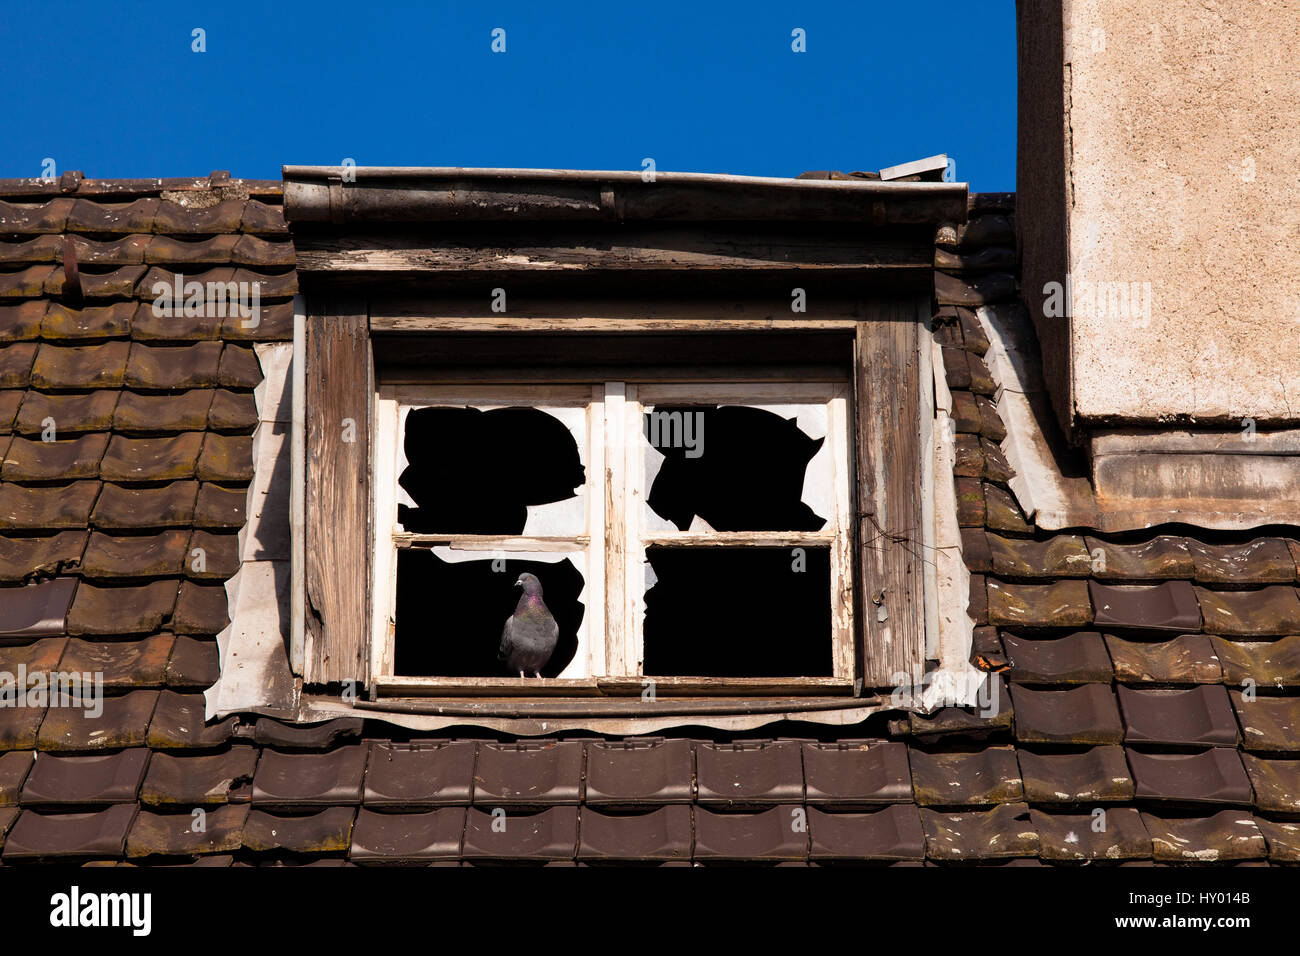 Germany,  Cologne, pigeon in a window of an old abandoned harbor building in the harbor Deutz. - Stock Image